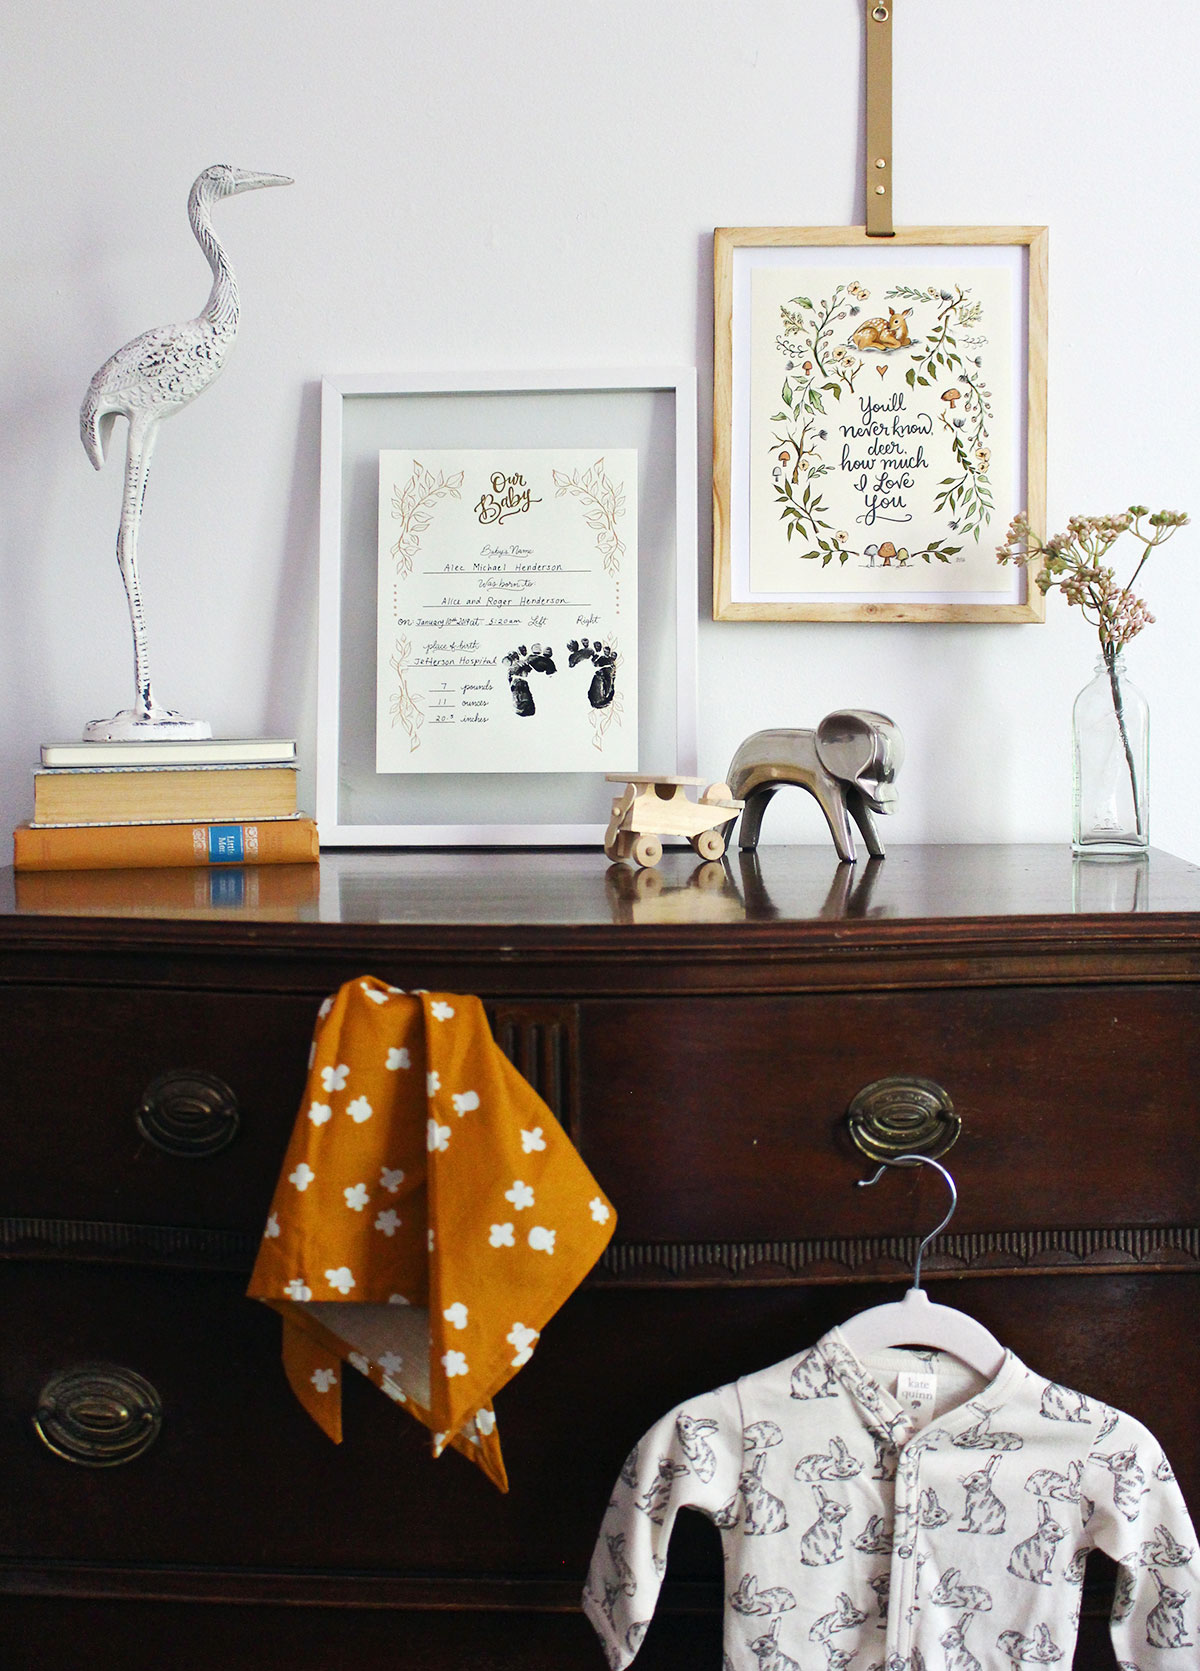 Introducing the Baby Print & Canvas Collection - hand drawn and hand lettered nursery art prints